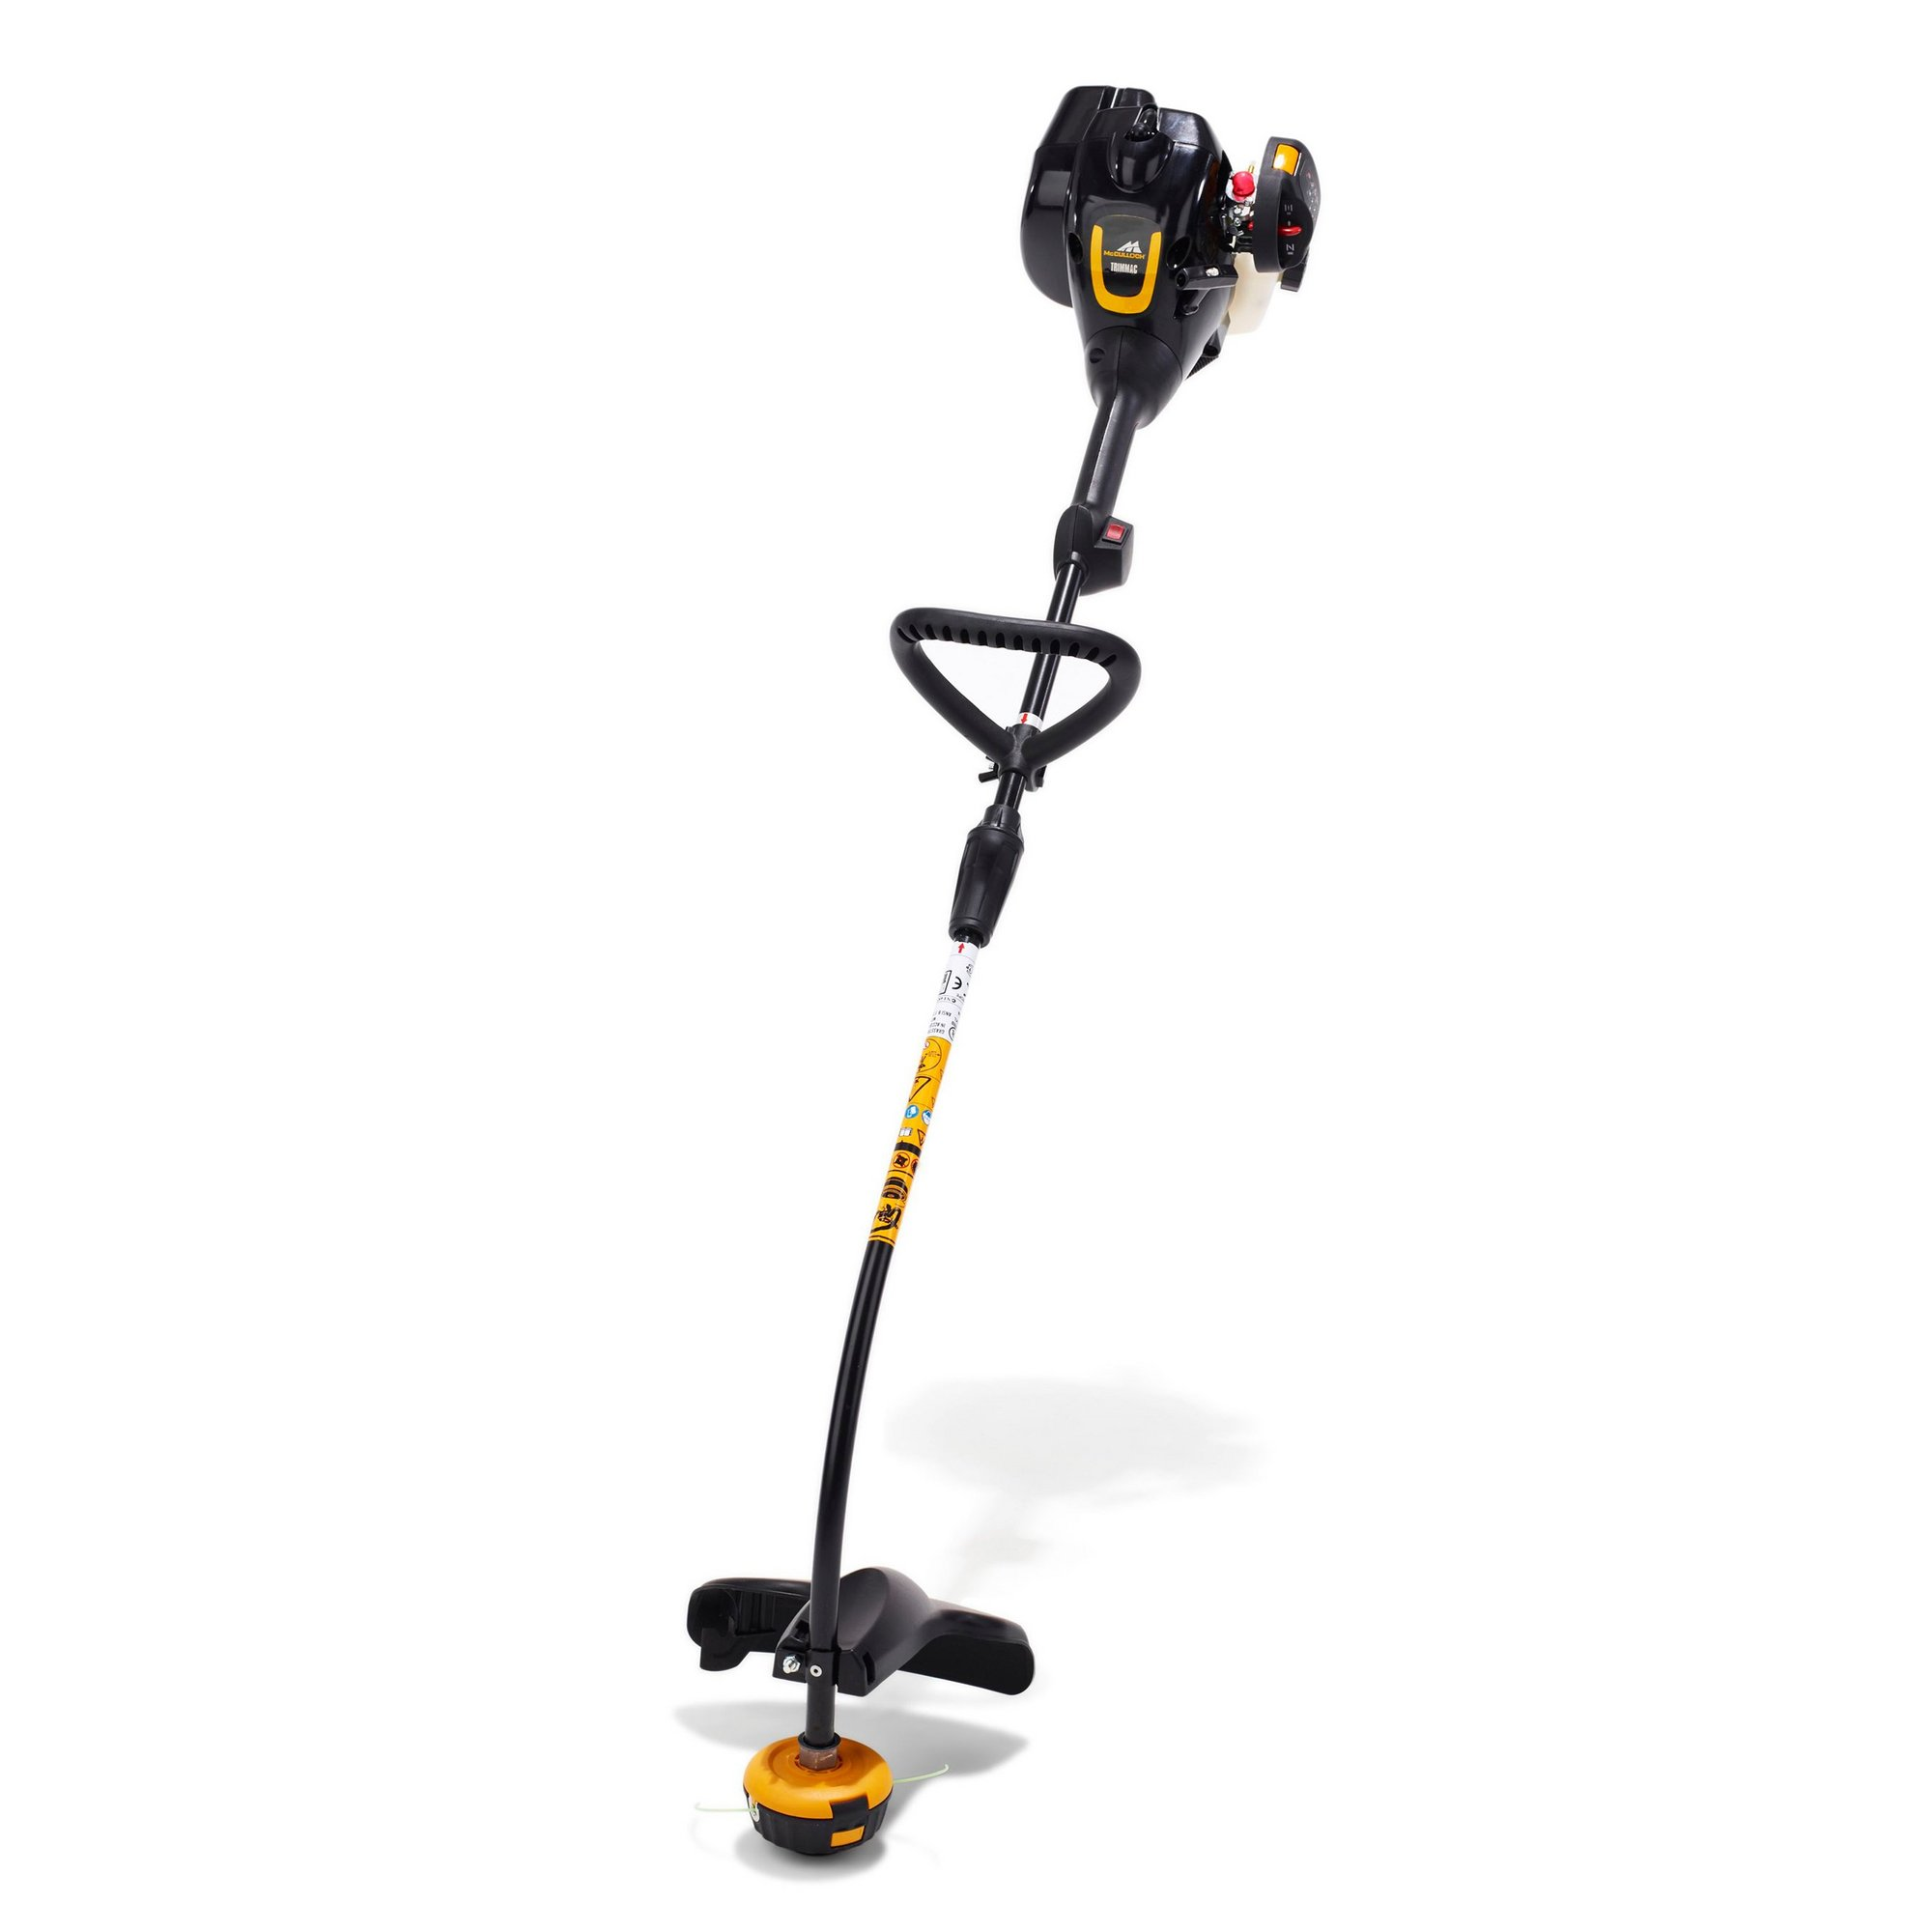 Image of McCulloch Trimmac Petrol Grass Trimmer